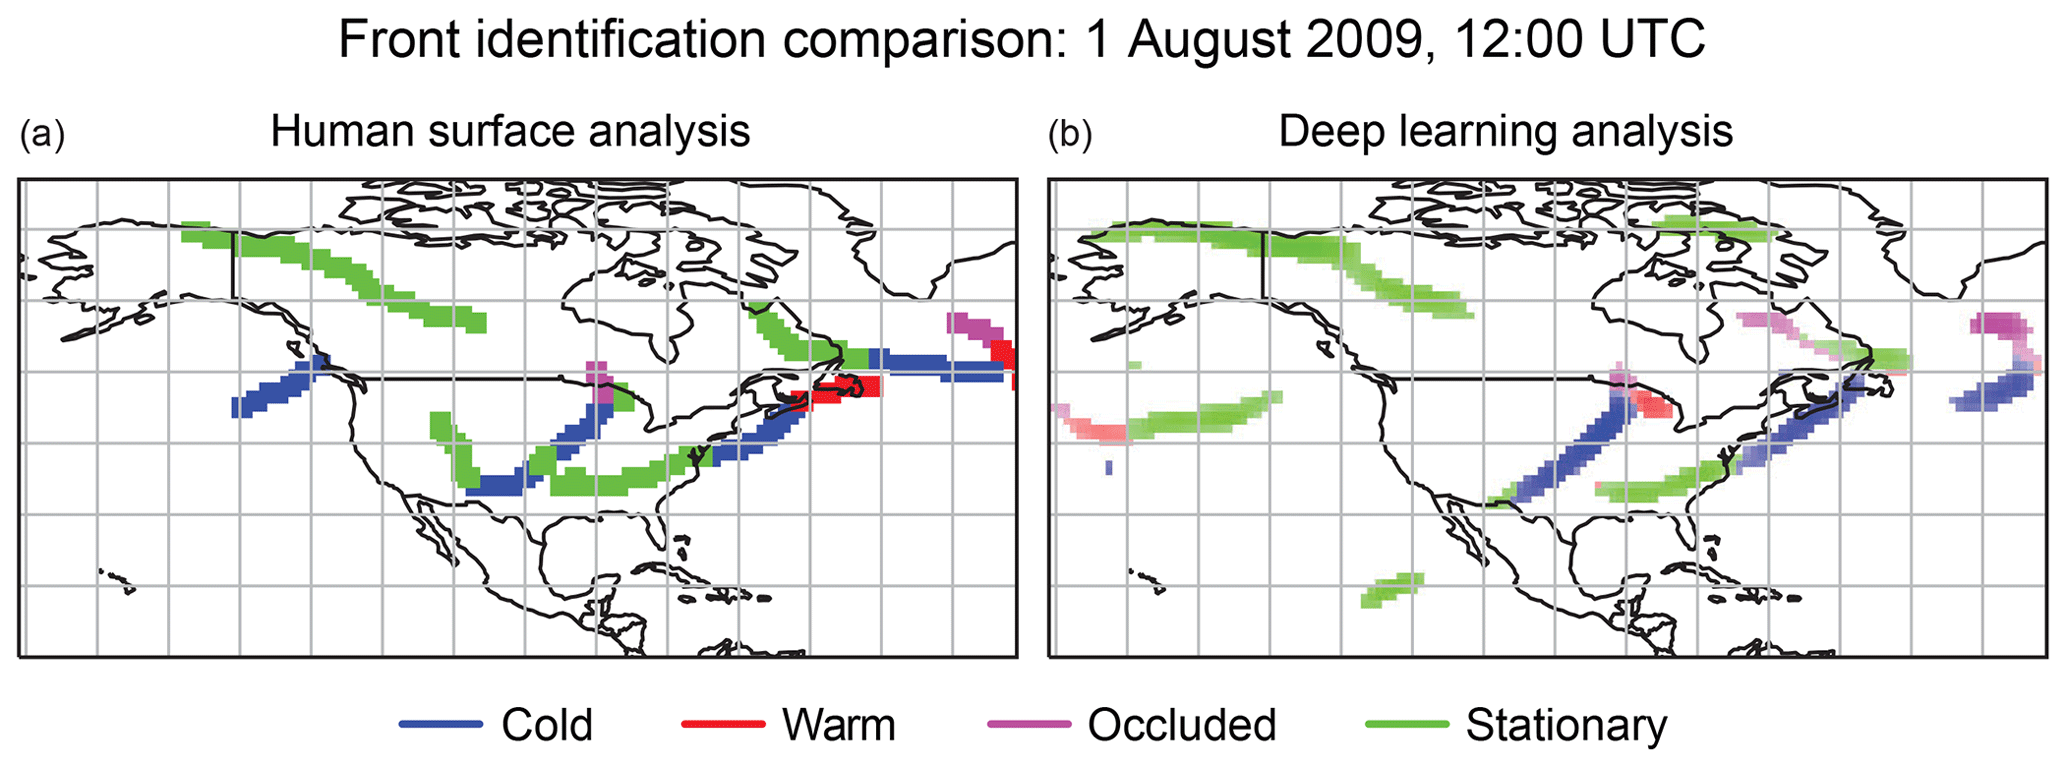 """The map on the left shows cold, warm, occluded, and stationary fronts identified over North America by human analysis for August 1, 2009, at 12 universal coordinated time. The map on the right shows the same information but with fronts identified by the DL-FRONT deep learning analysis tool. The text of the Biard and Kunkel paper describes the similarities and differences as follows: """"The DL-FRONT results are very similar to the CSB fronts in terms of the general locations. There are spatial discrepancies that are sometimes large enough that the front locations do not overlap, and there are several discrepancies regarding the type of front. The DL-FRONT results are missing a Pacific coast cold front and a western mountains stationary front from the CSB observations. DL-FRONT identifies additional fronts in the Pacific Ocean and on Baffin Island in the Arctic; these are beyond the areas regularly analyzed for fronts by the National Weather Service."""""""